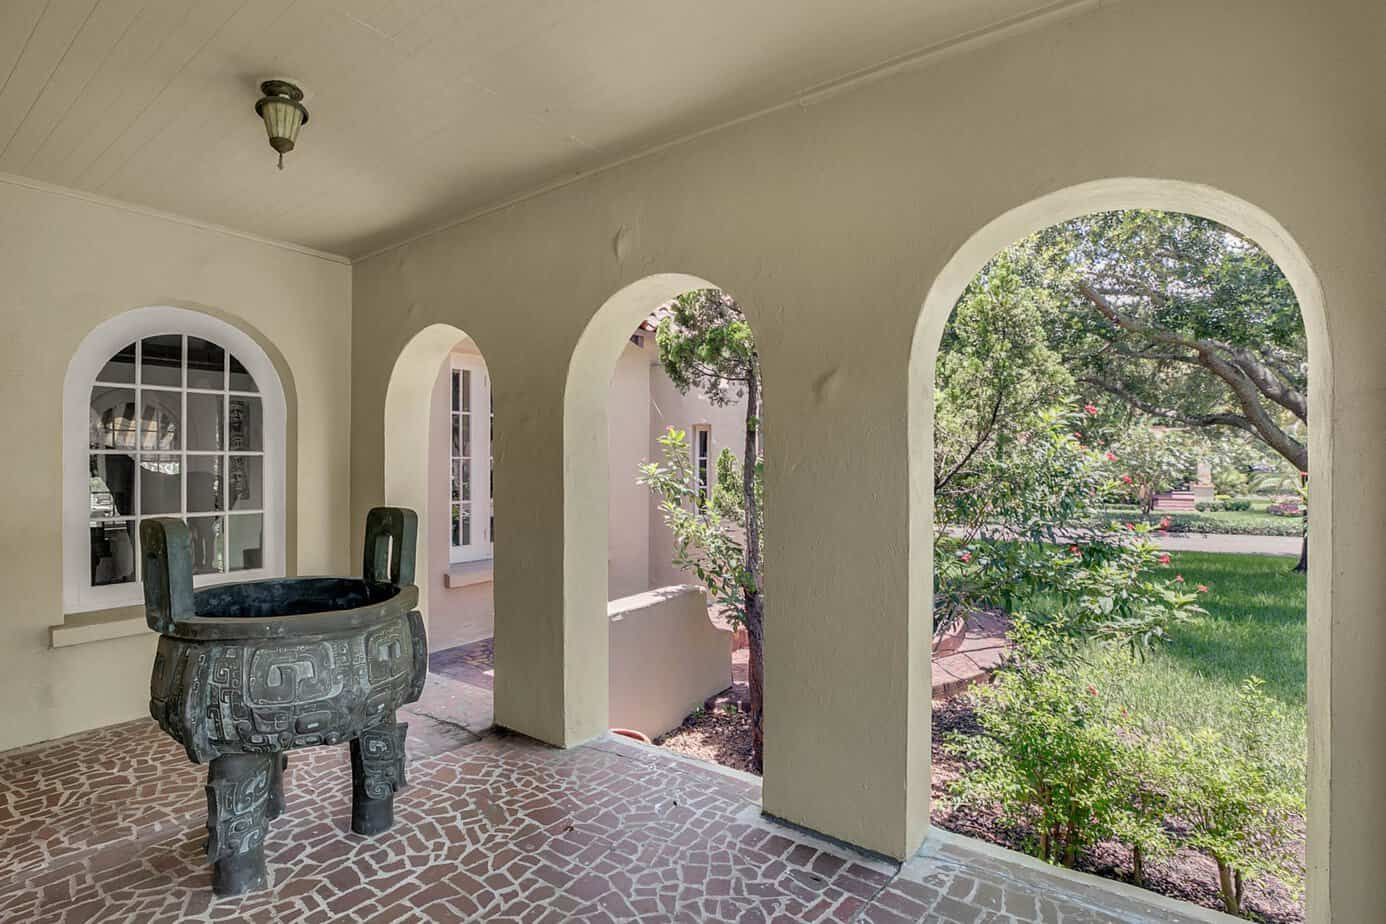 Front porch of home at 4024 W Bay to Bay Tampa FL 33629 with mosaic floors, 3 arched doorwats and an arched window